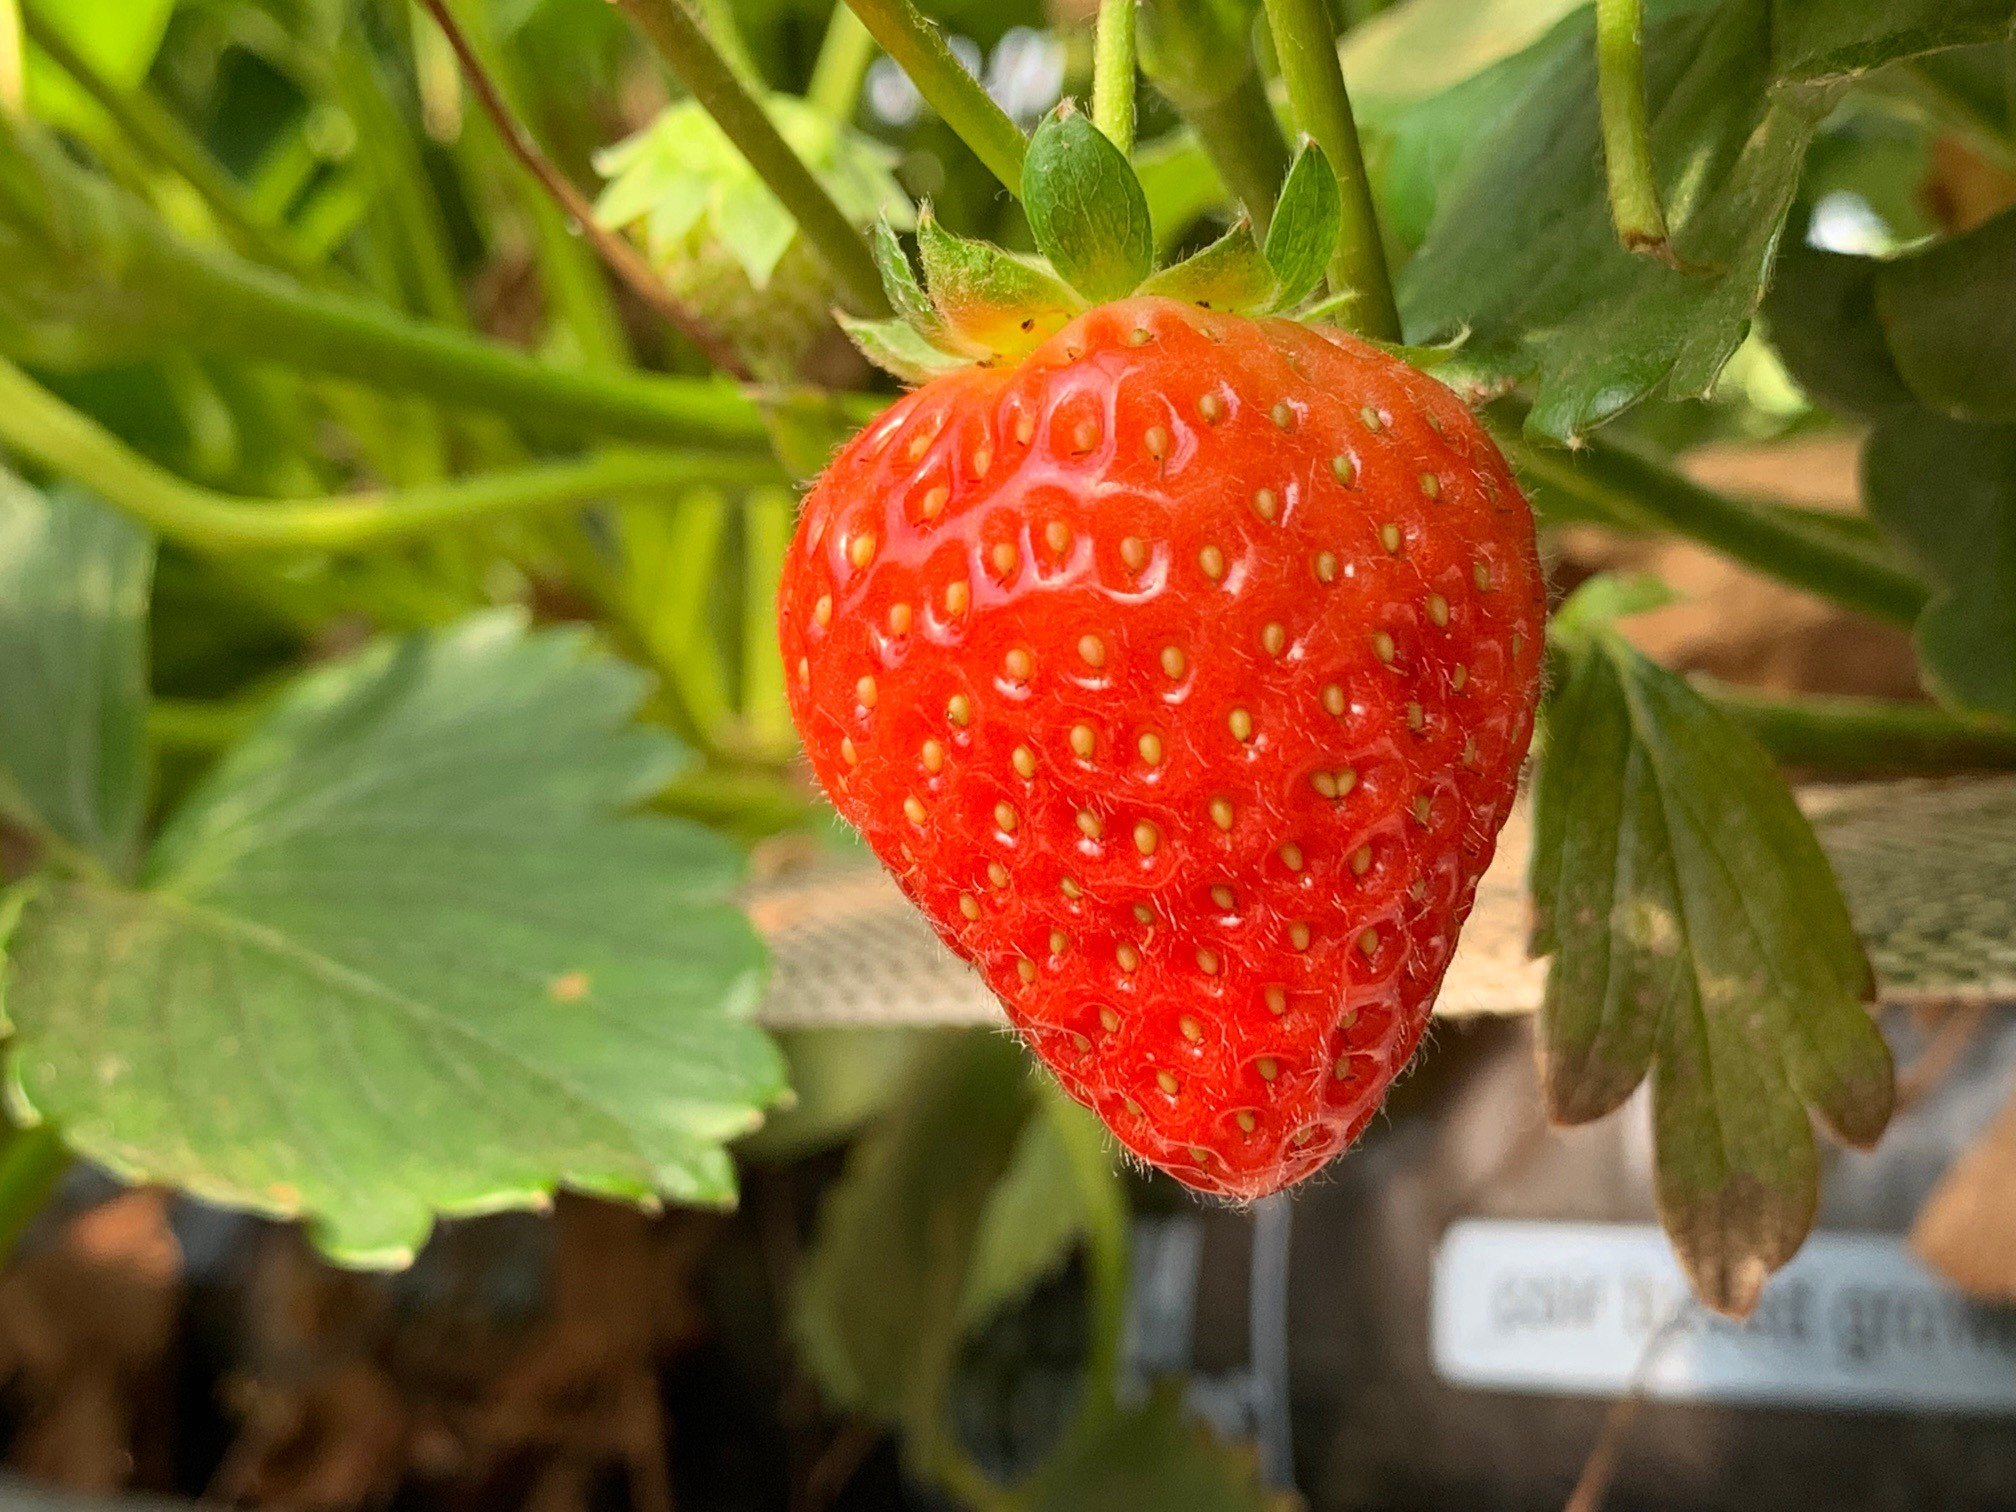 juicy red strawberry growing on a plant